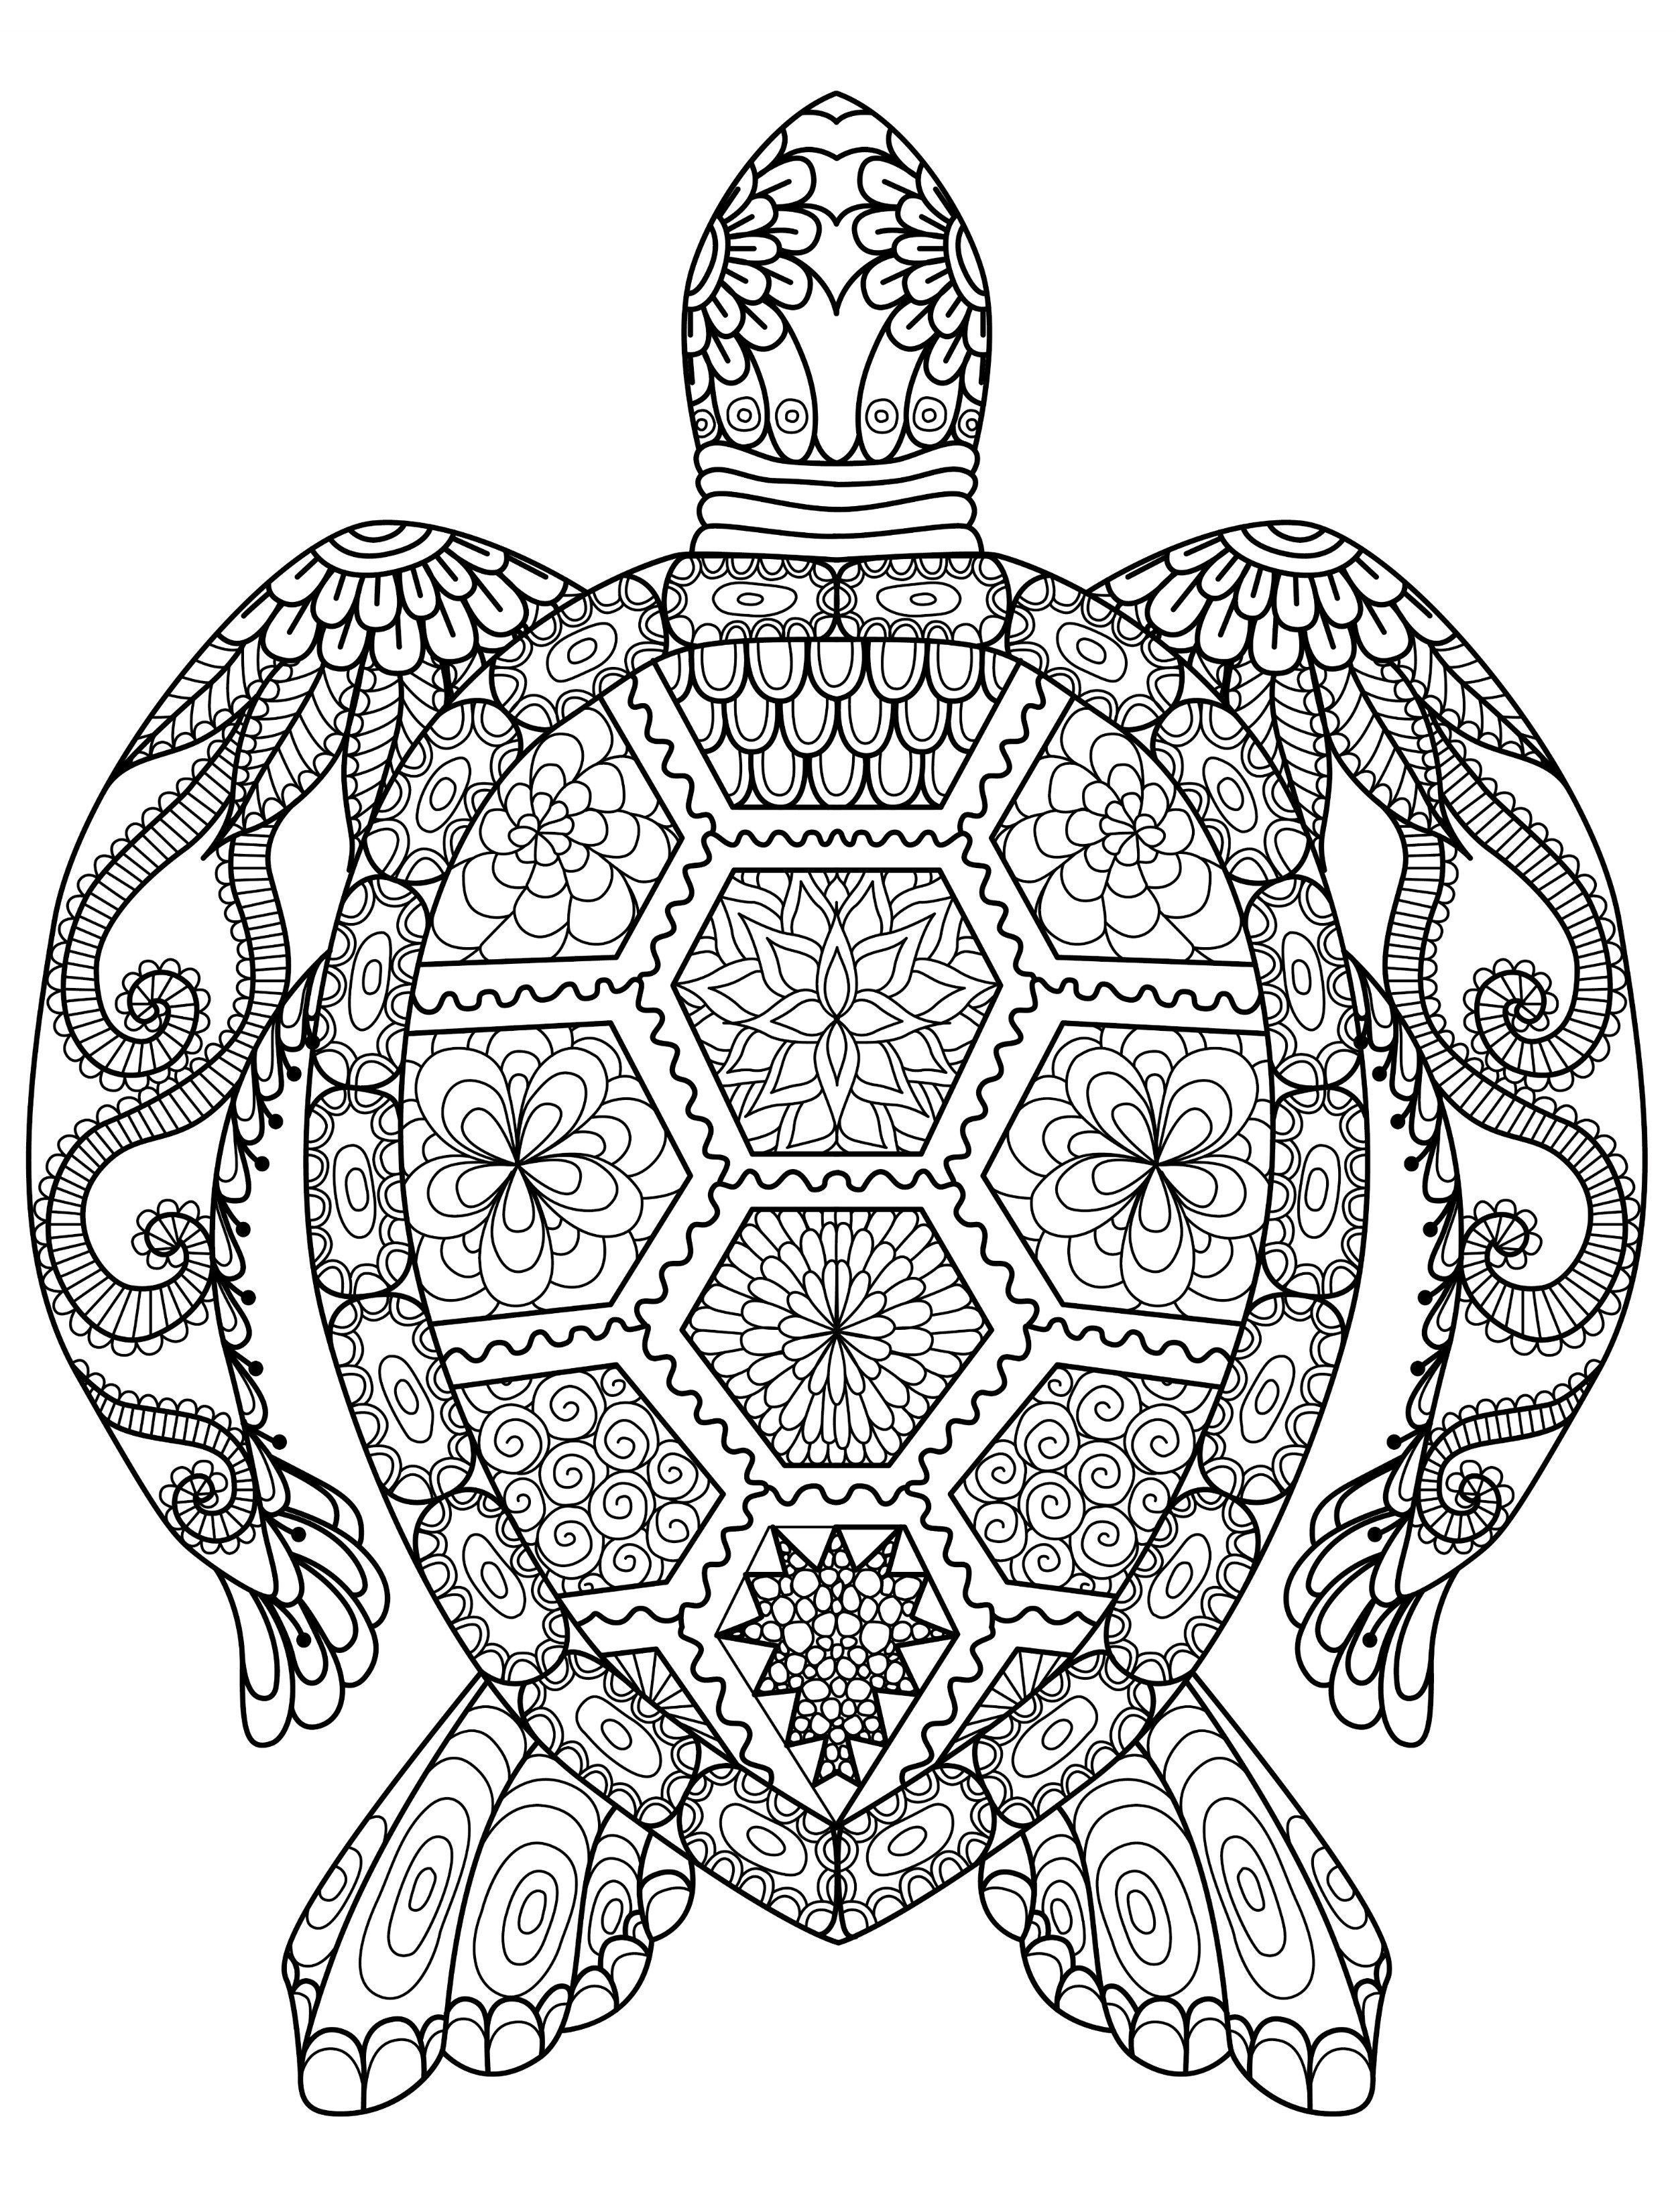 19 mandala animal coloring pages download coloring sheets. Black Bedroom Furniture Sets. Home Design Ideas